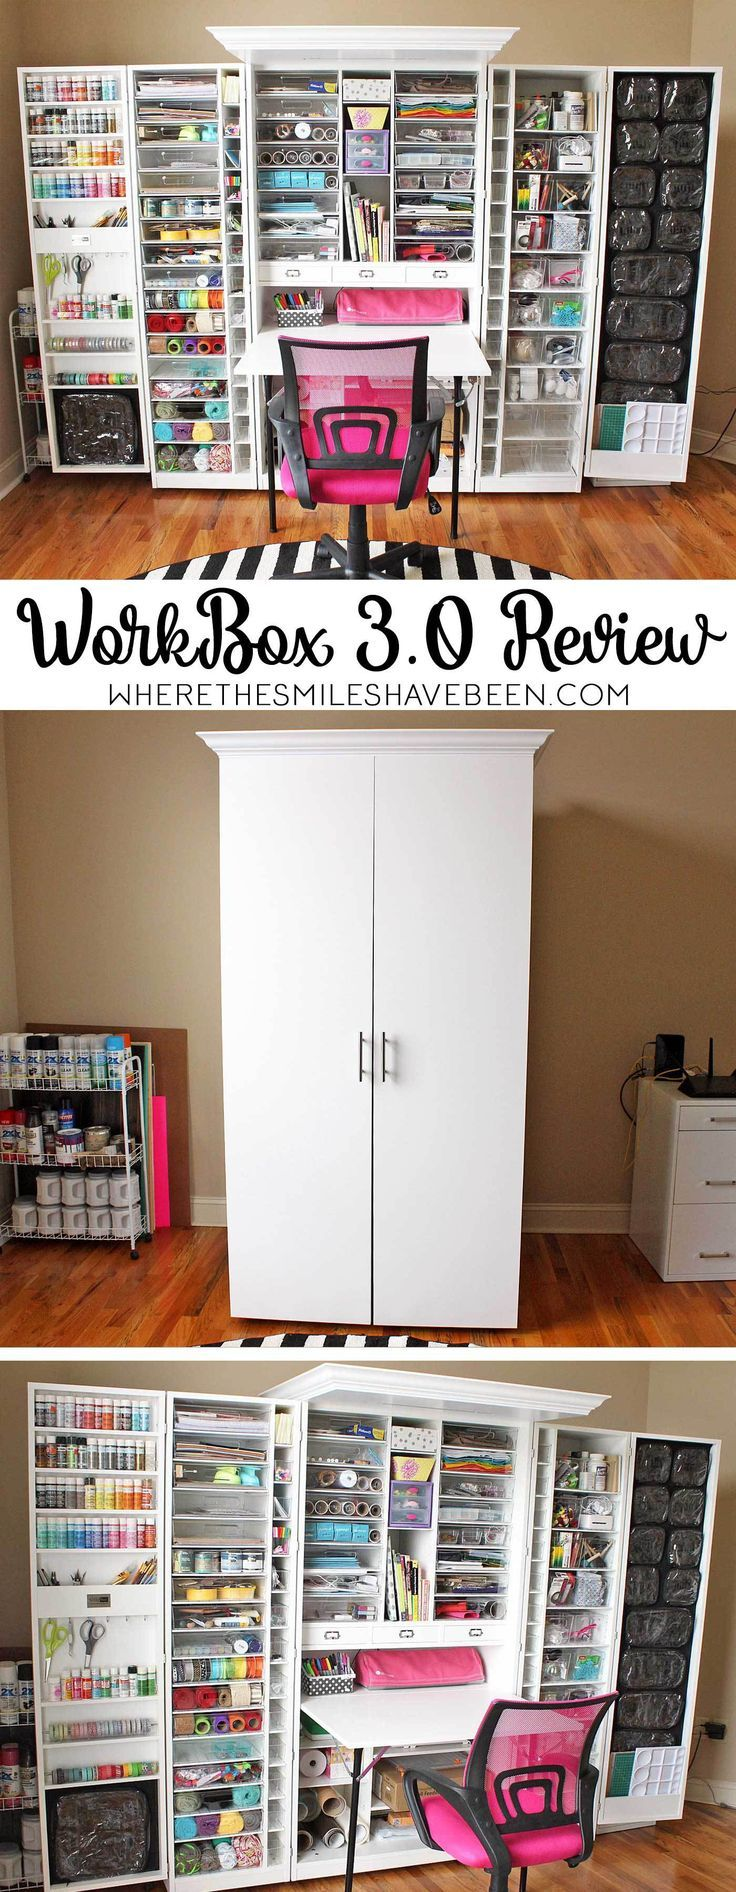 My WorkBox 3.0 Review: The Good, The Bad, & The WTF?! #badroom